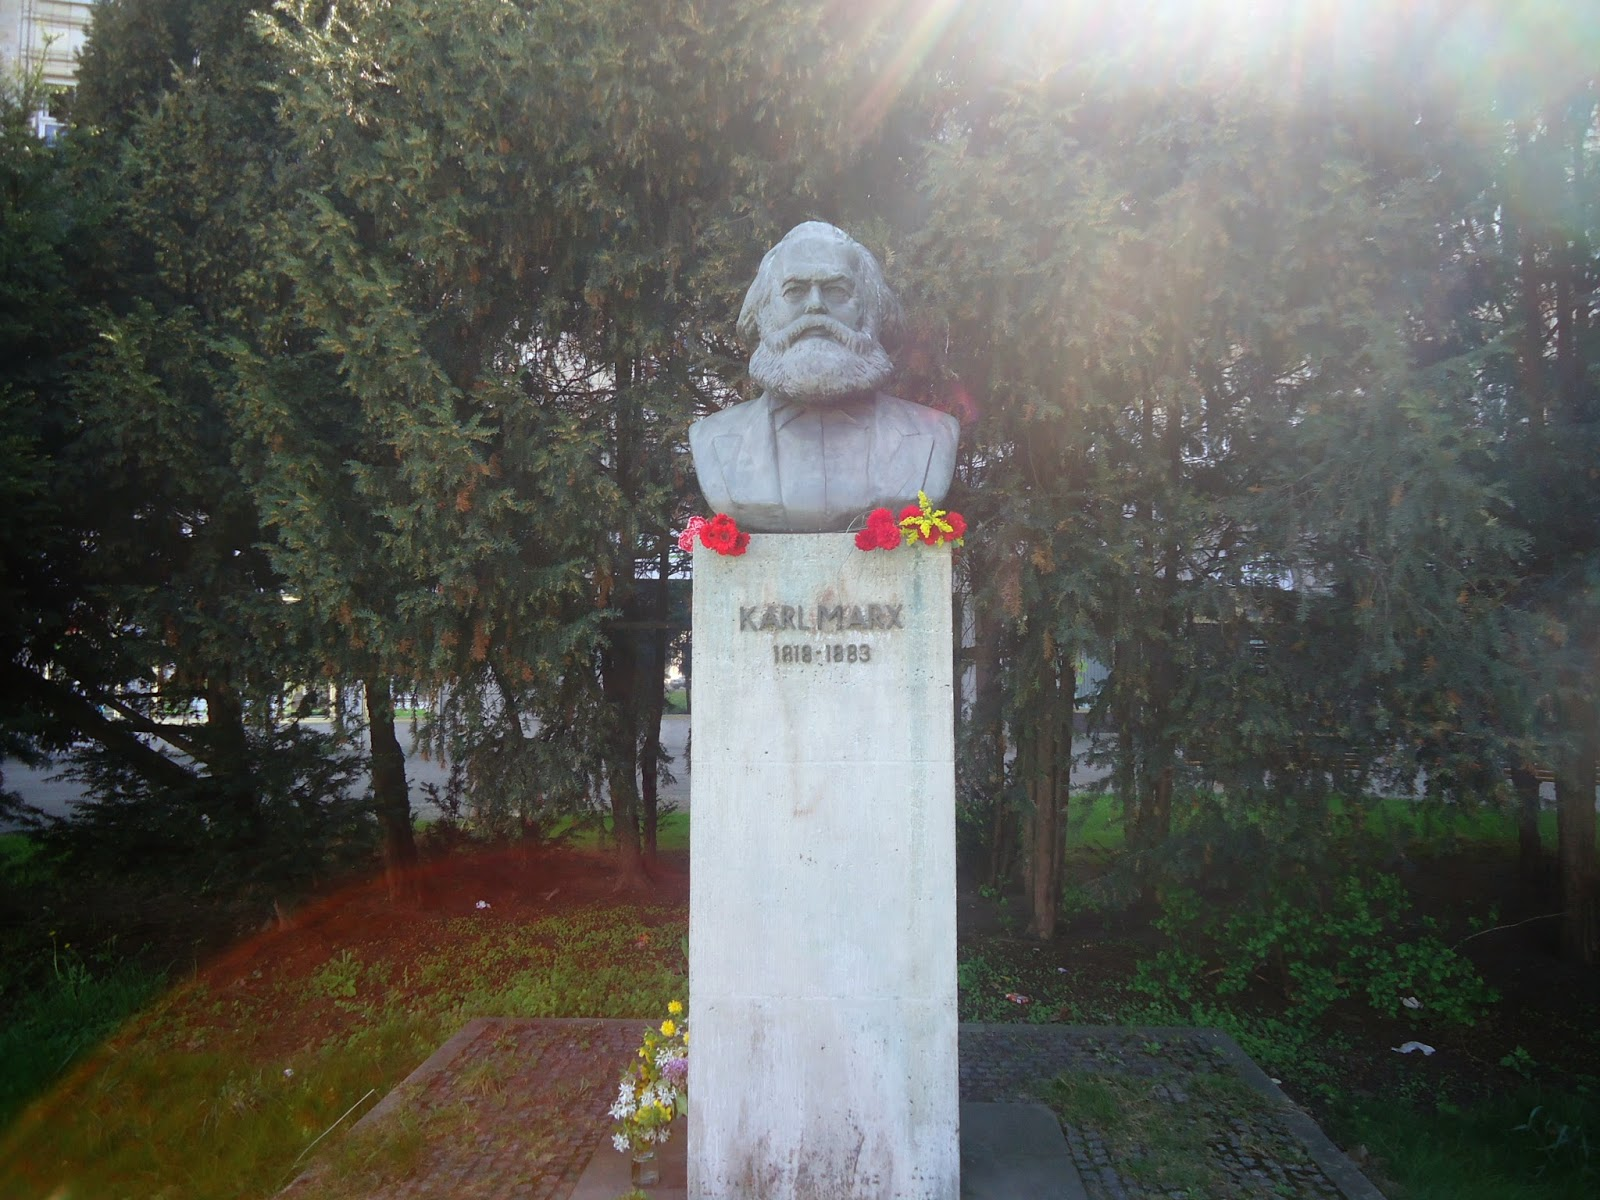 Karl Marx berlin germany statue history